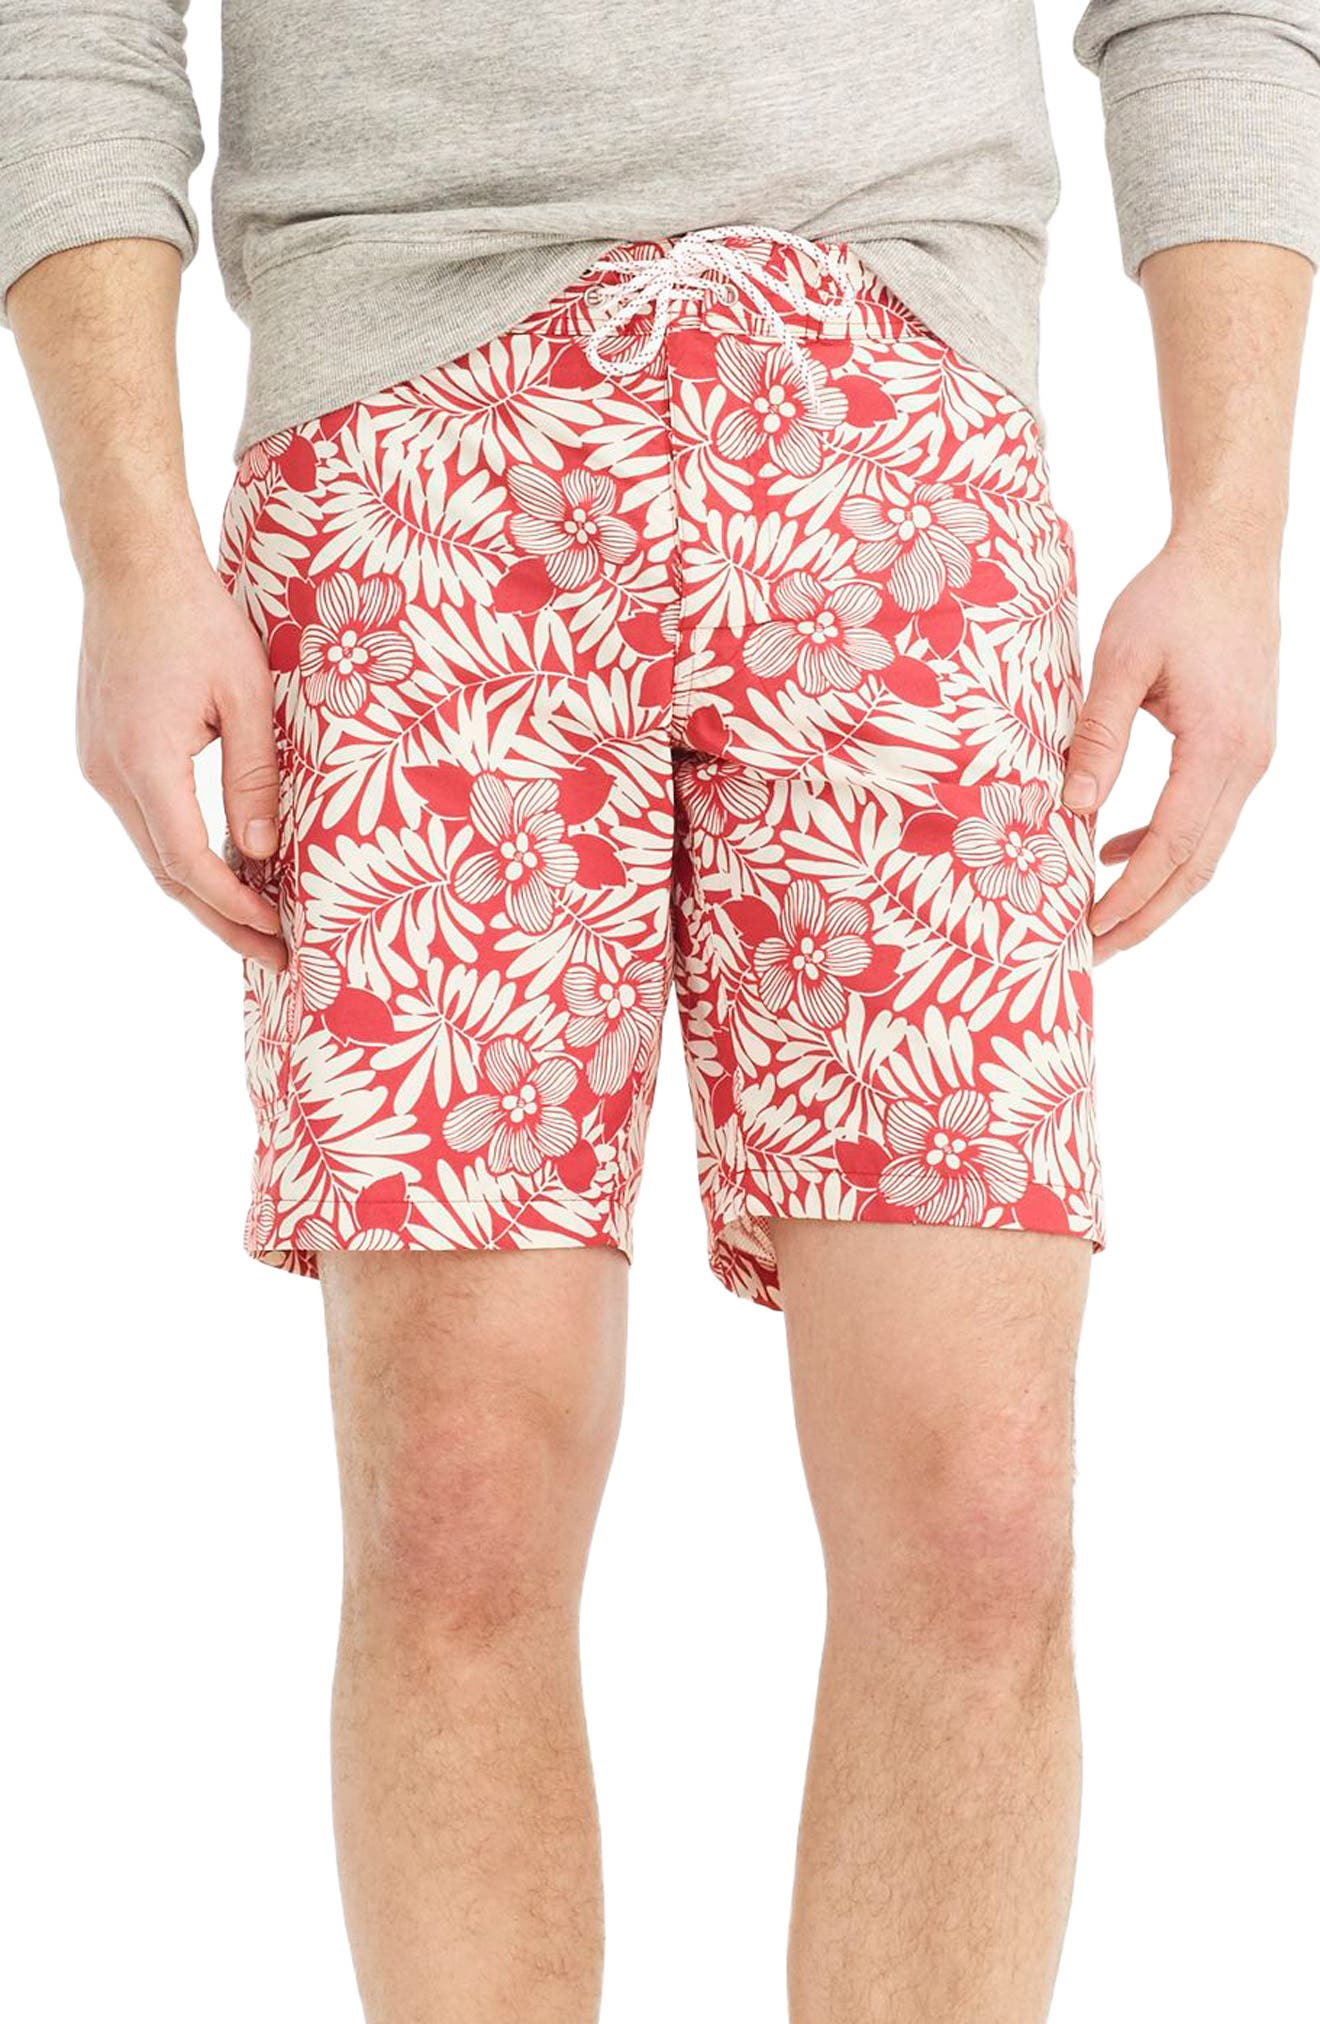 Fern Print Board Shorts,                         Main,                         color, Red Ivory